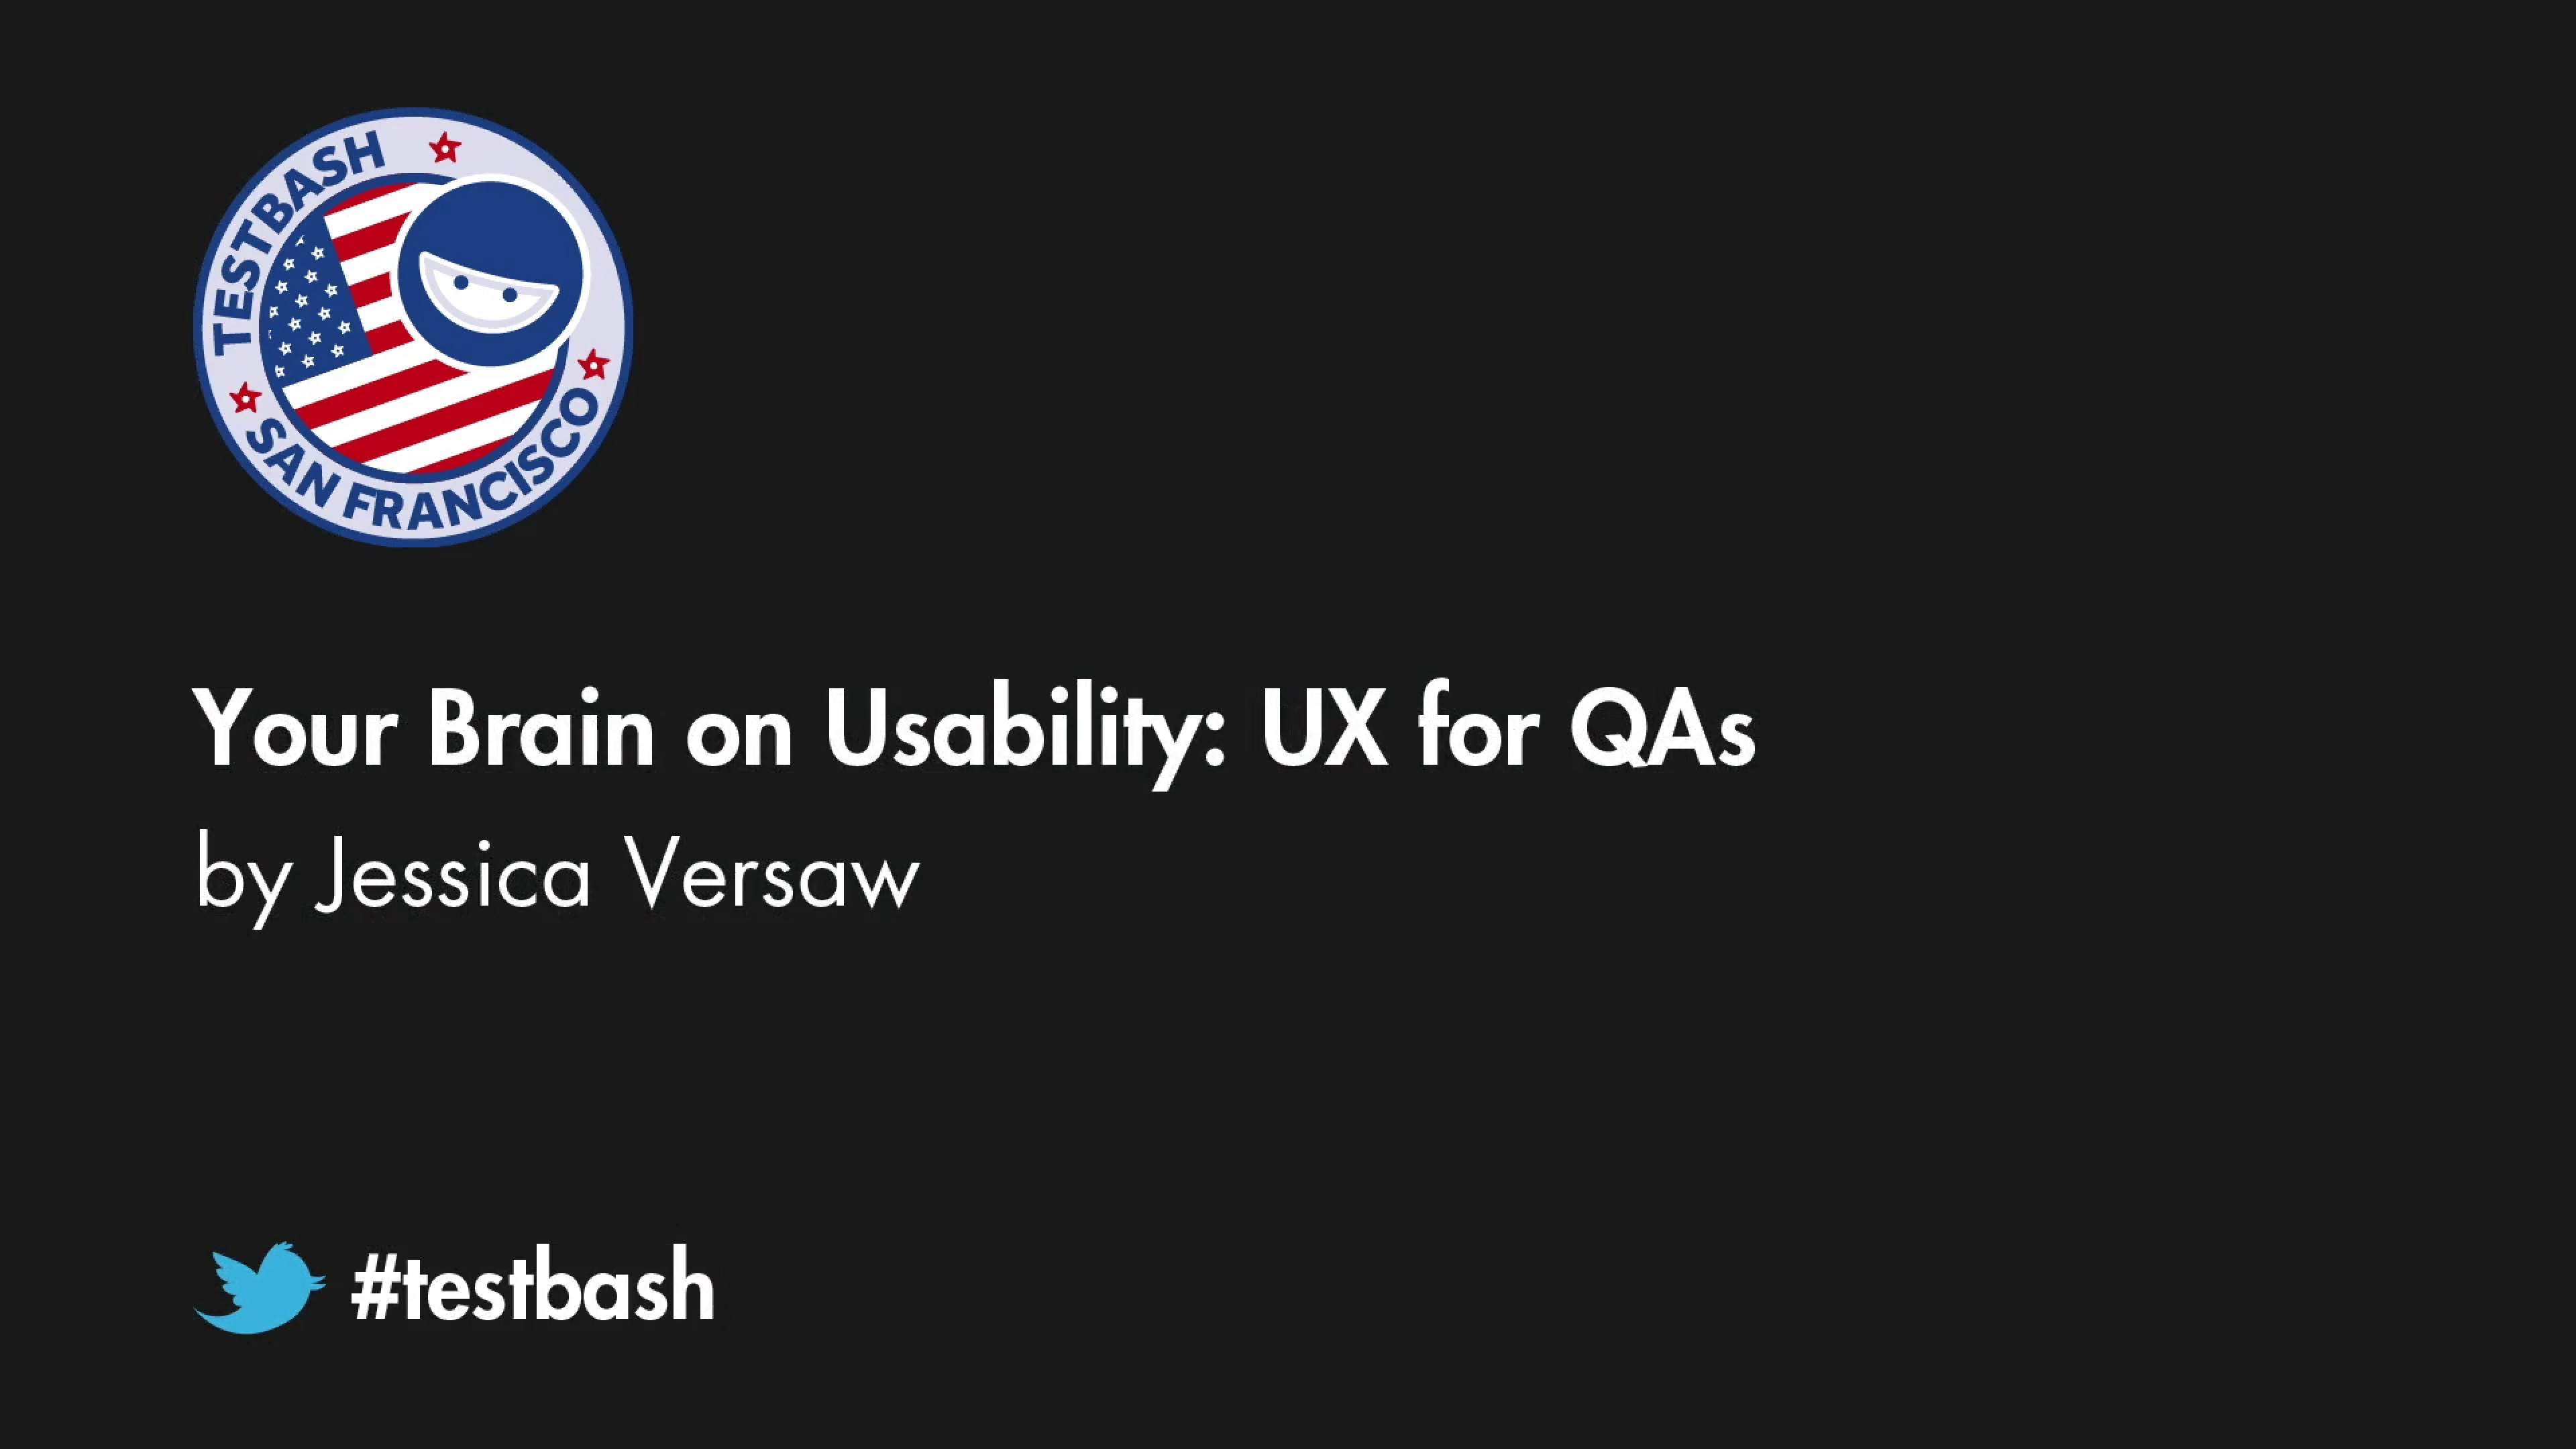 Your Brain on Usability: UX for QAs - Jessica Versaw